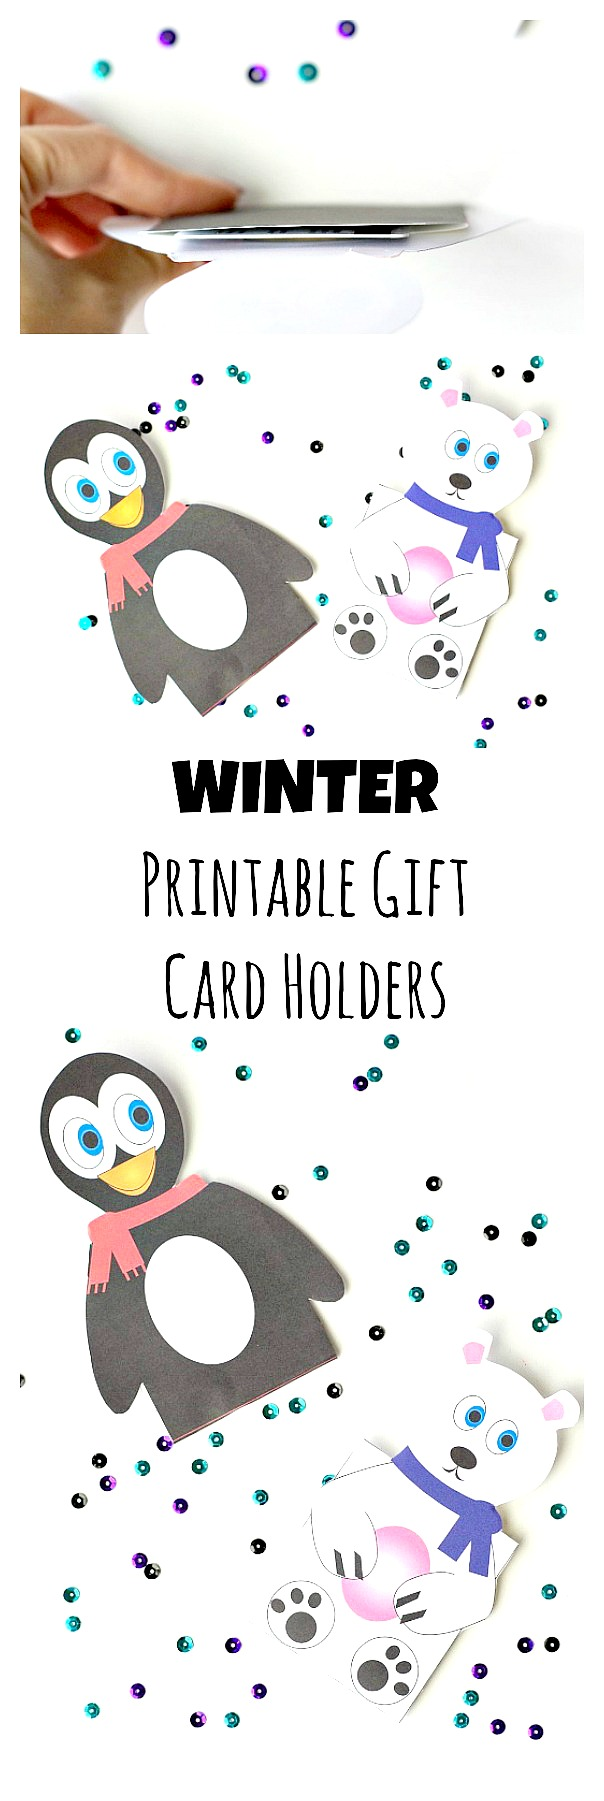 Printable Winter Gift Card Holders